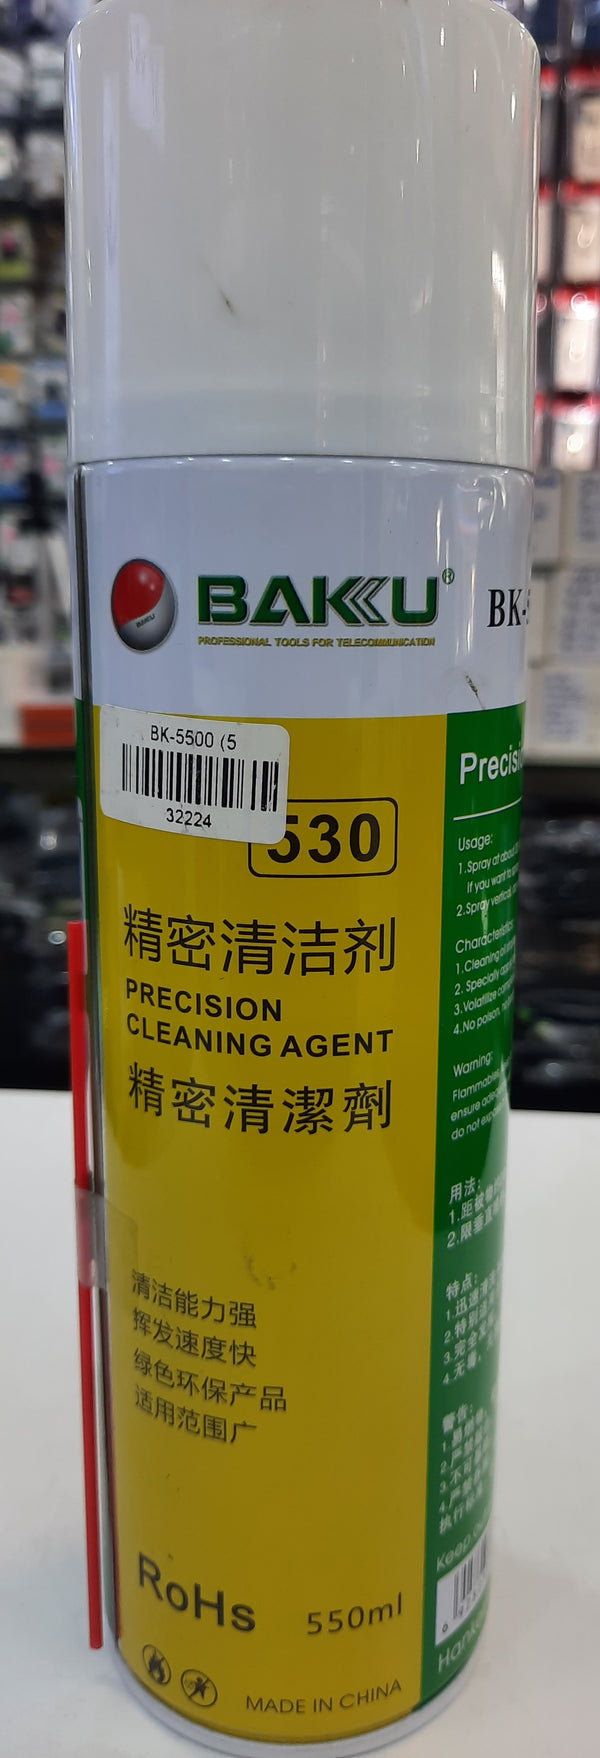 Precision Cleaning Agent 530 - Baku (BK-5500)